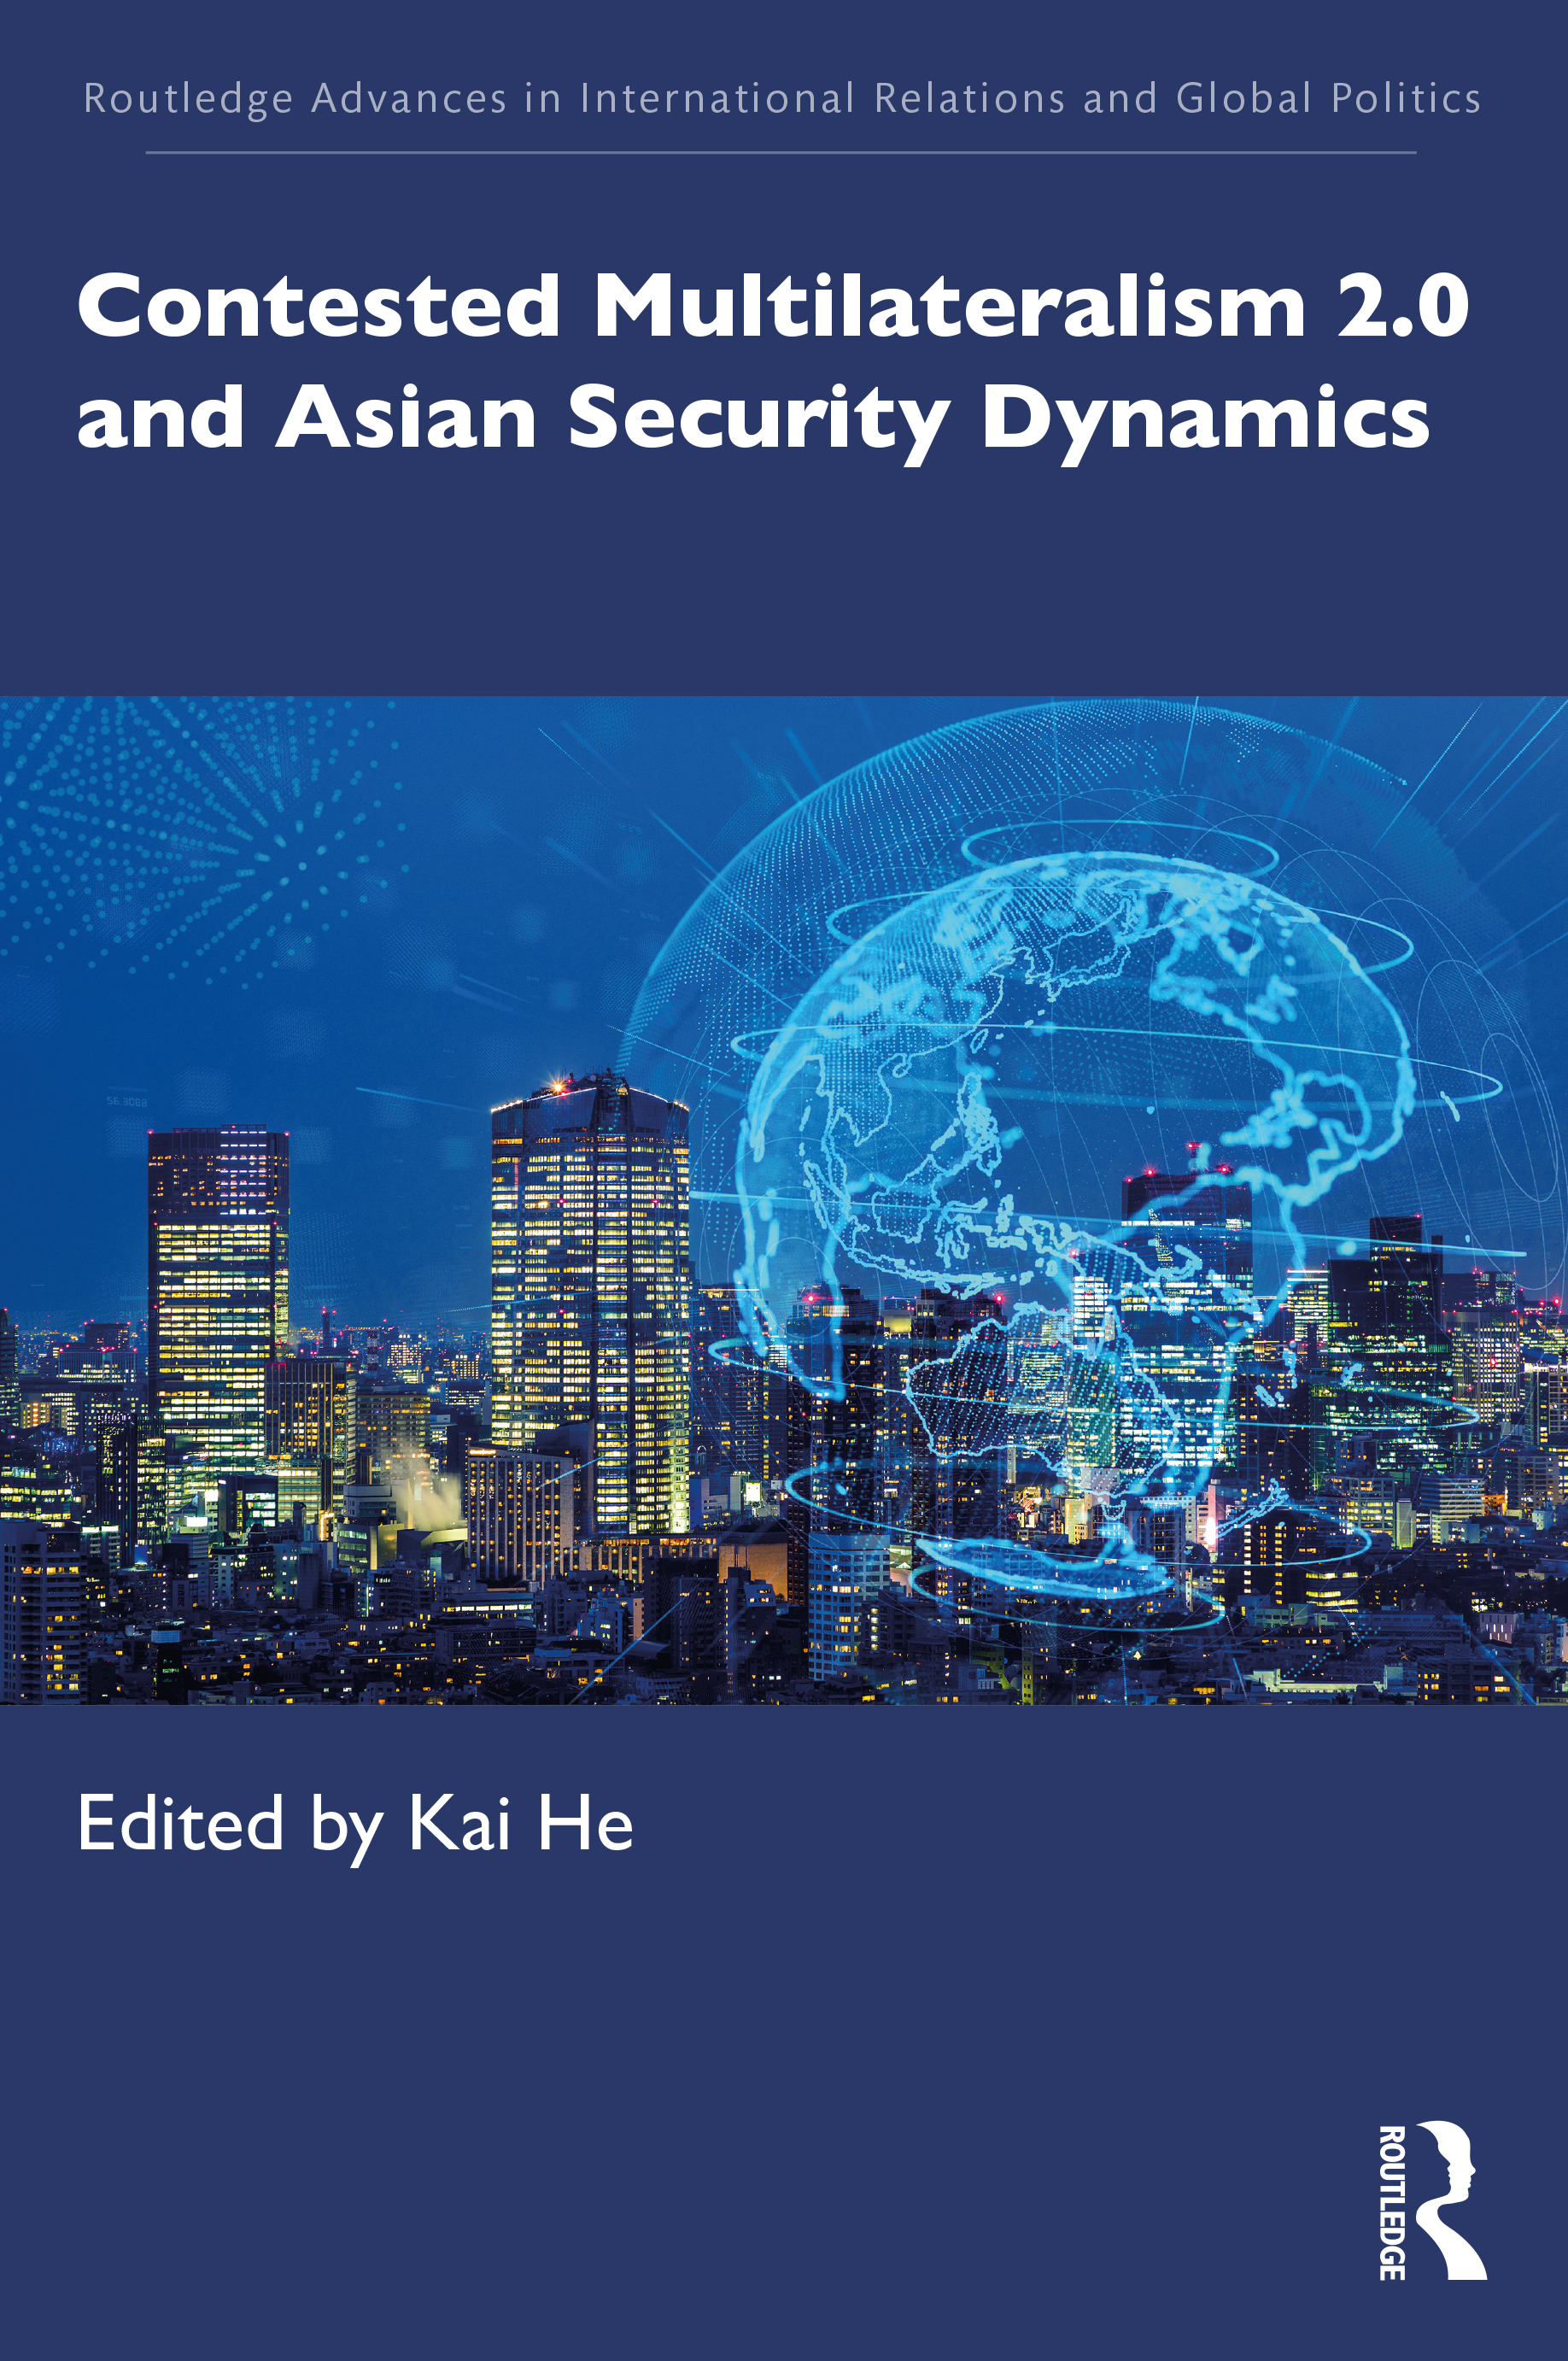 Contested Multilateralism 2.0 and Asian Security Dynamics